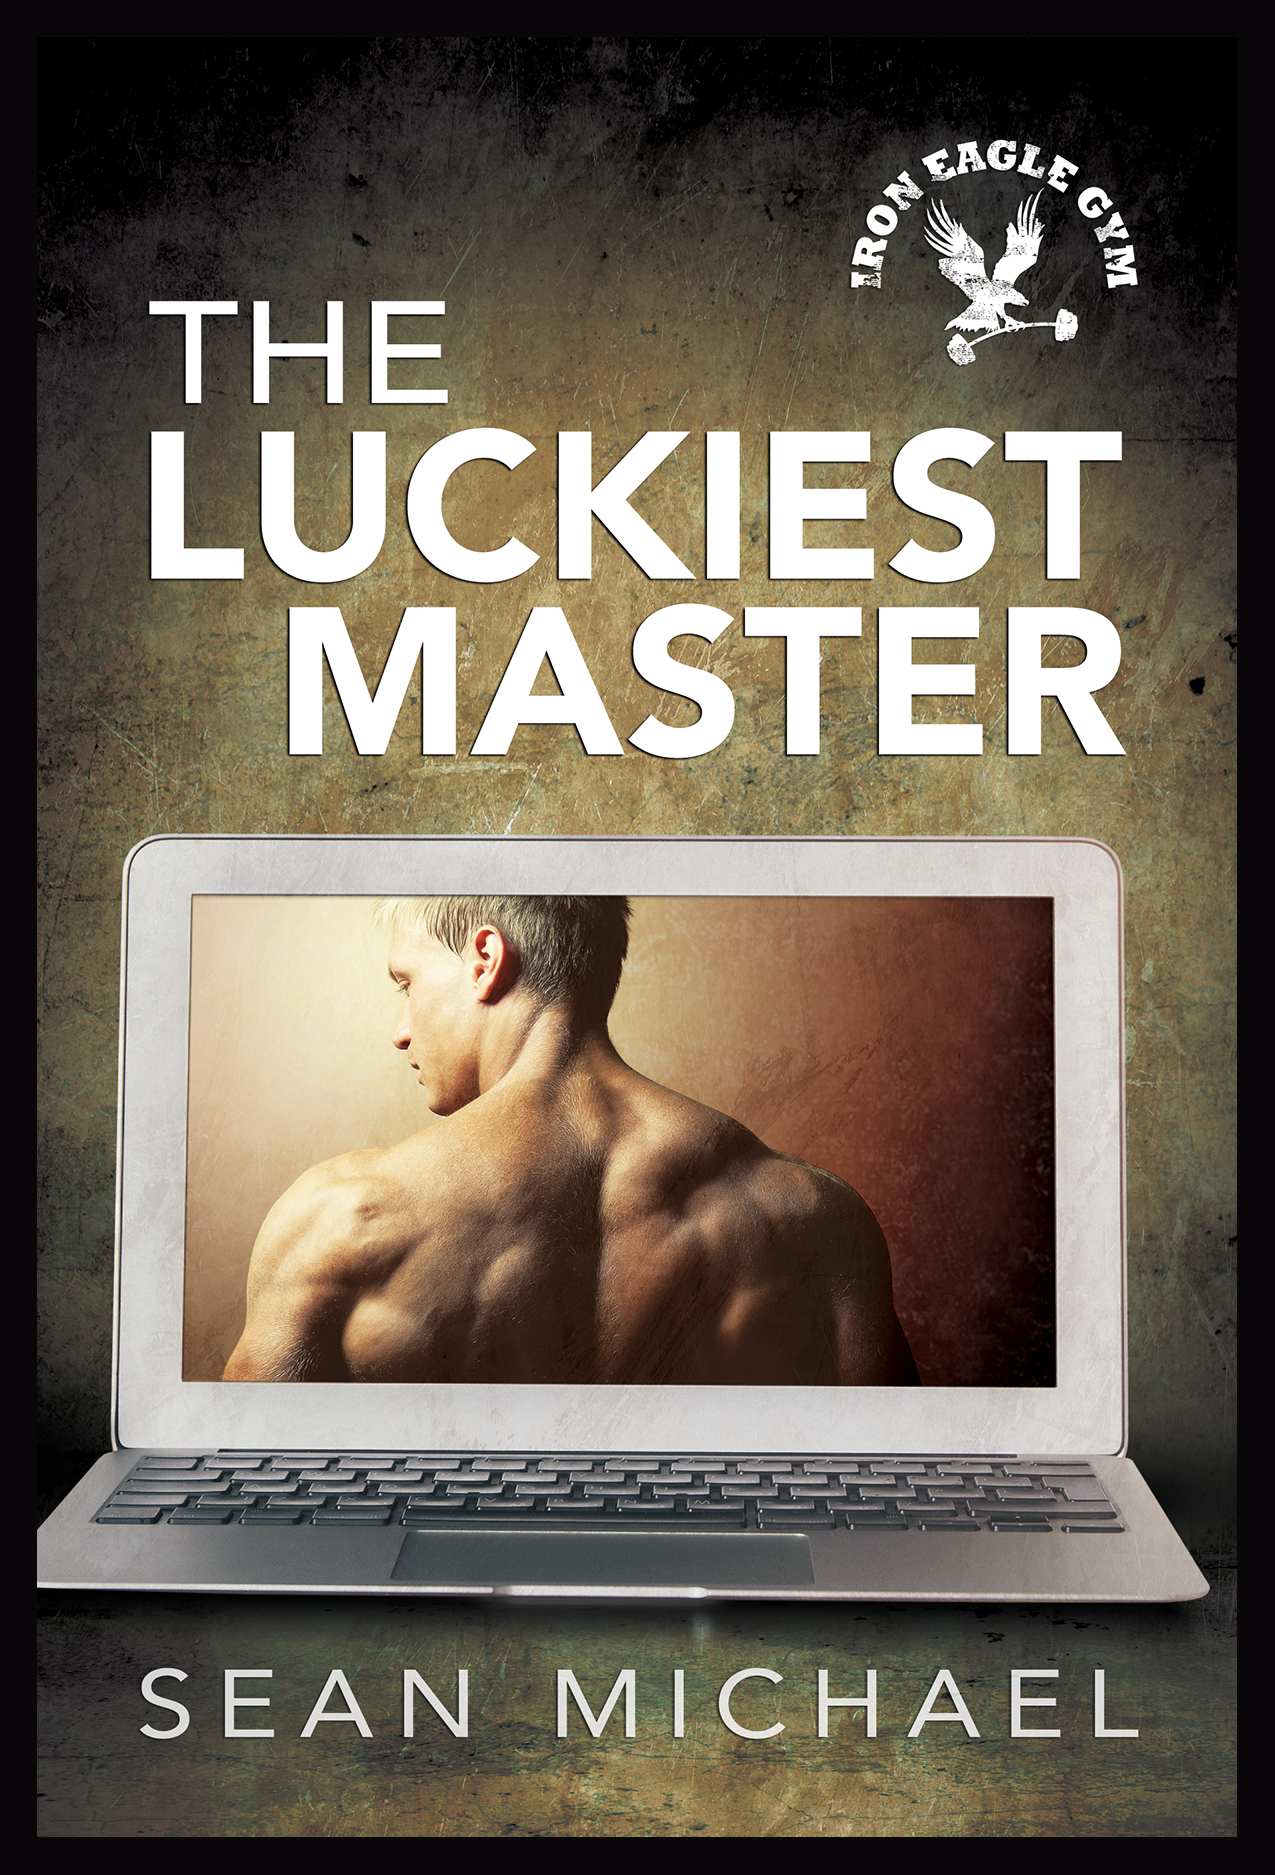 LuckiestMaster[The]_postcard_front_DSP